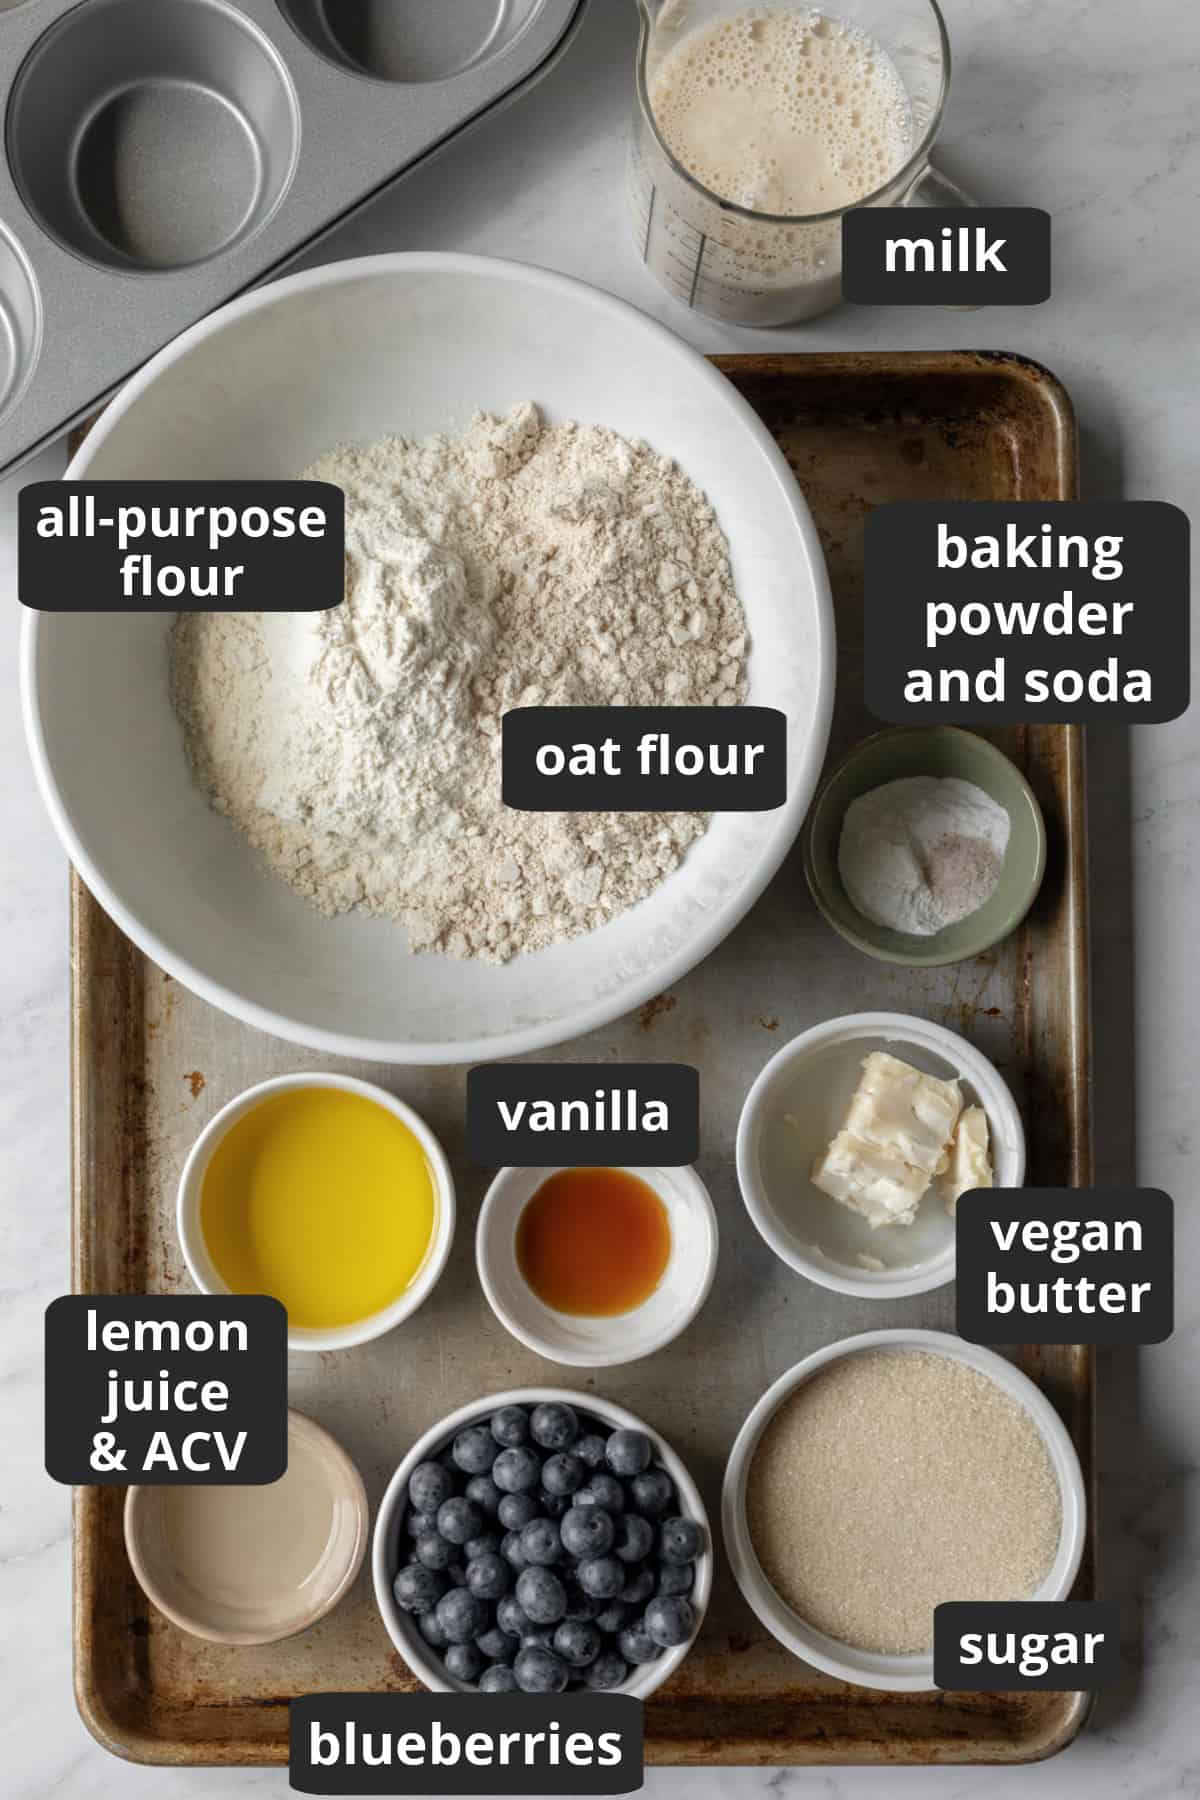 labeled photo of the 11 ingredients needed to make blueberry muffins.